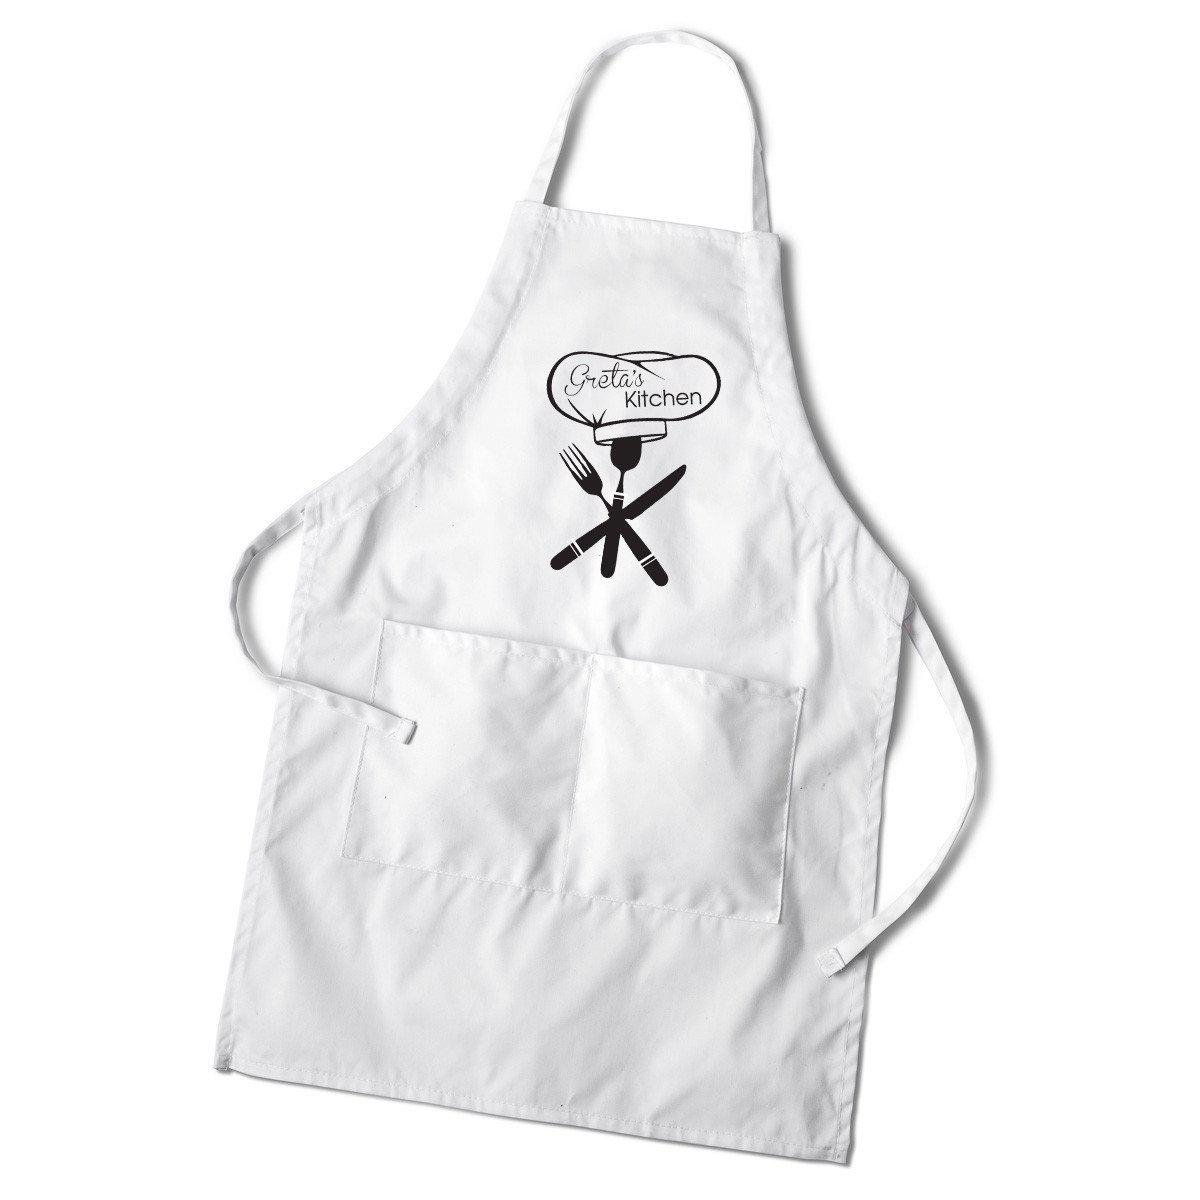 Personalized Women's Monogram White Apron